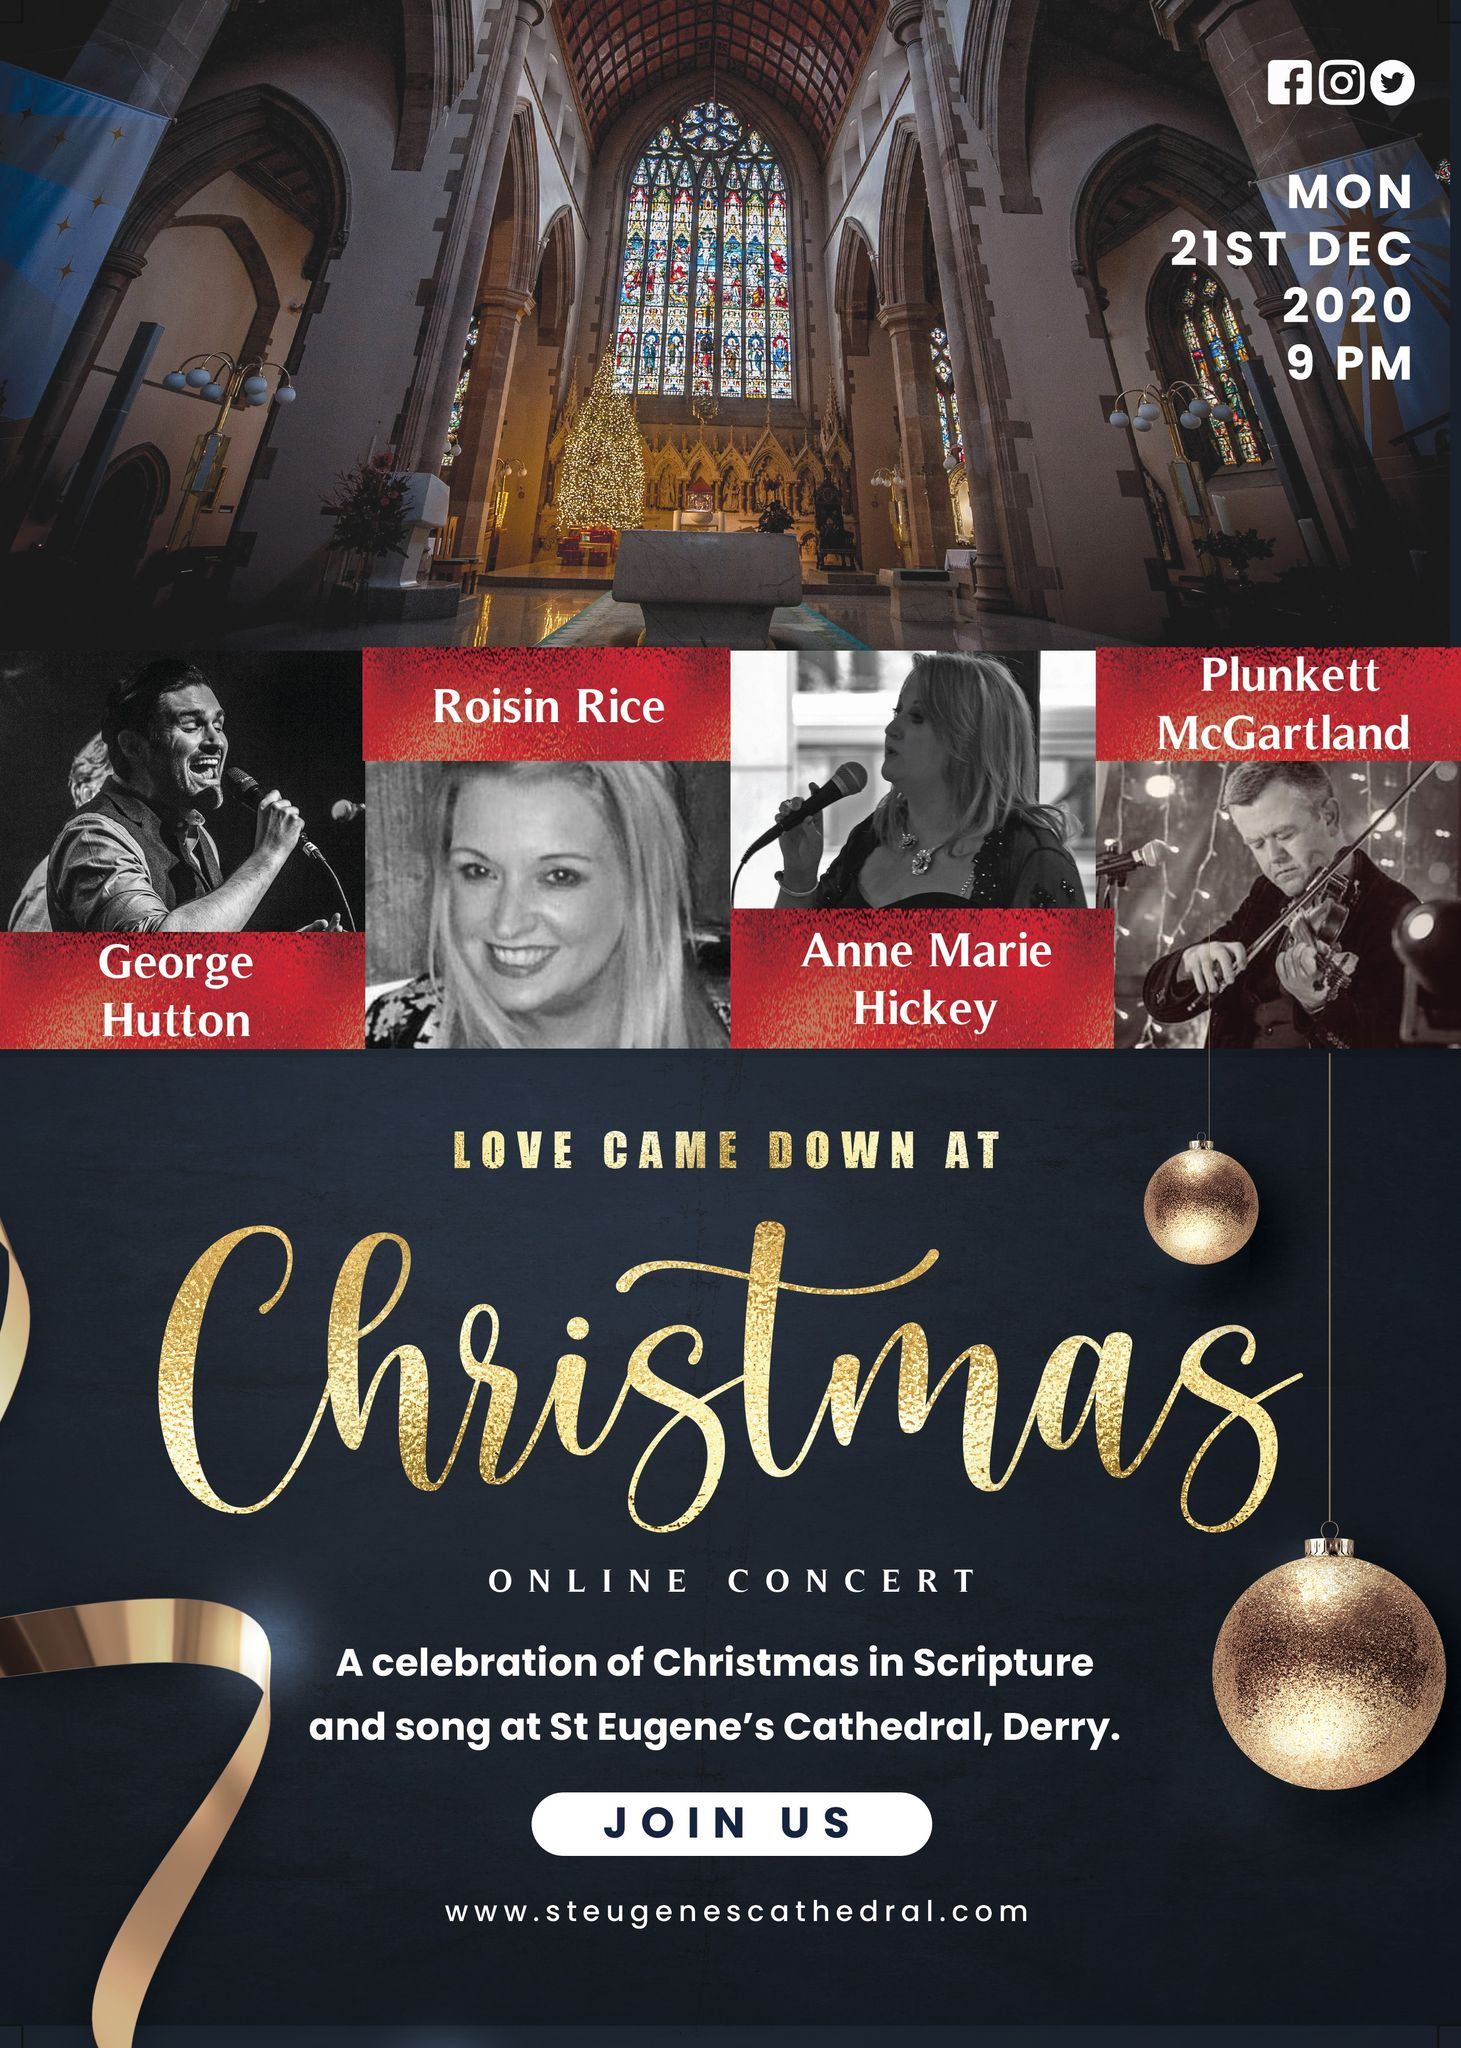 Christmas Concert - Derry Cathedral